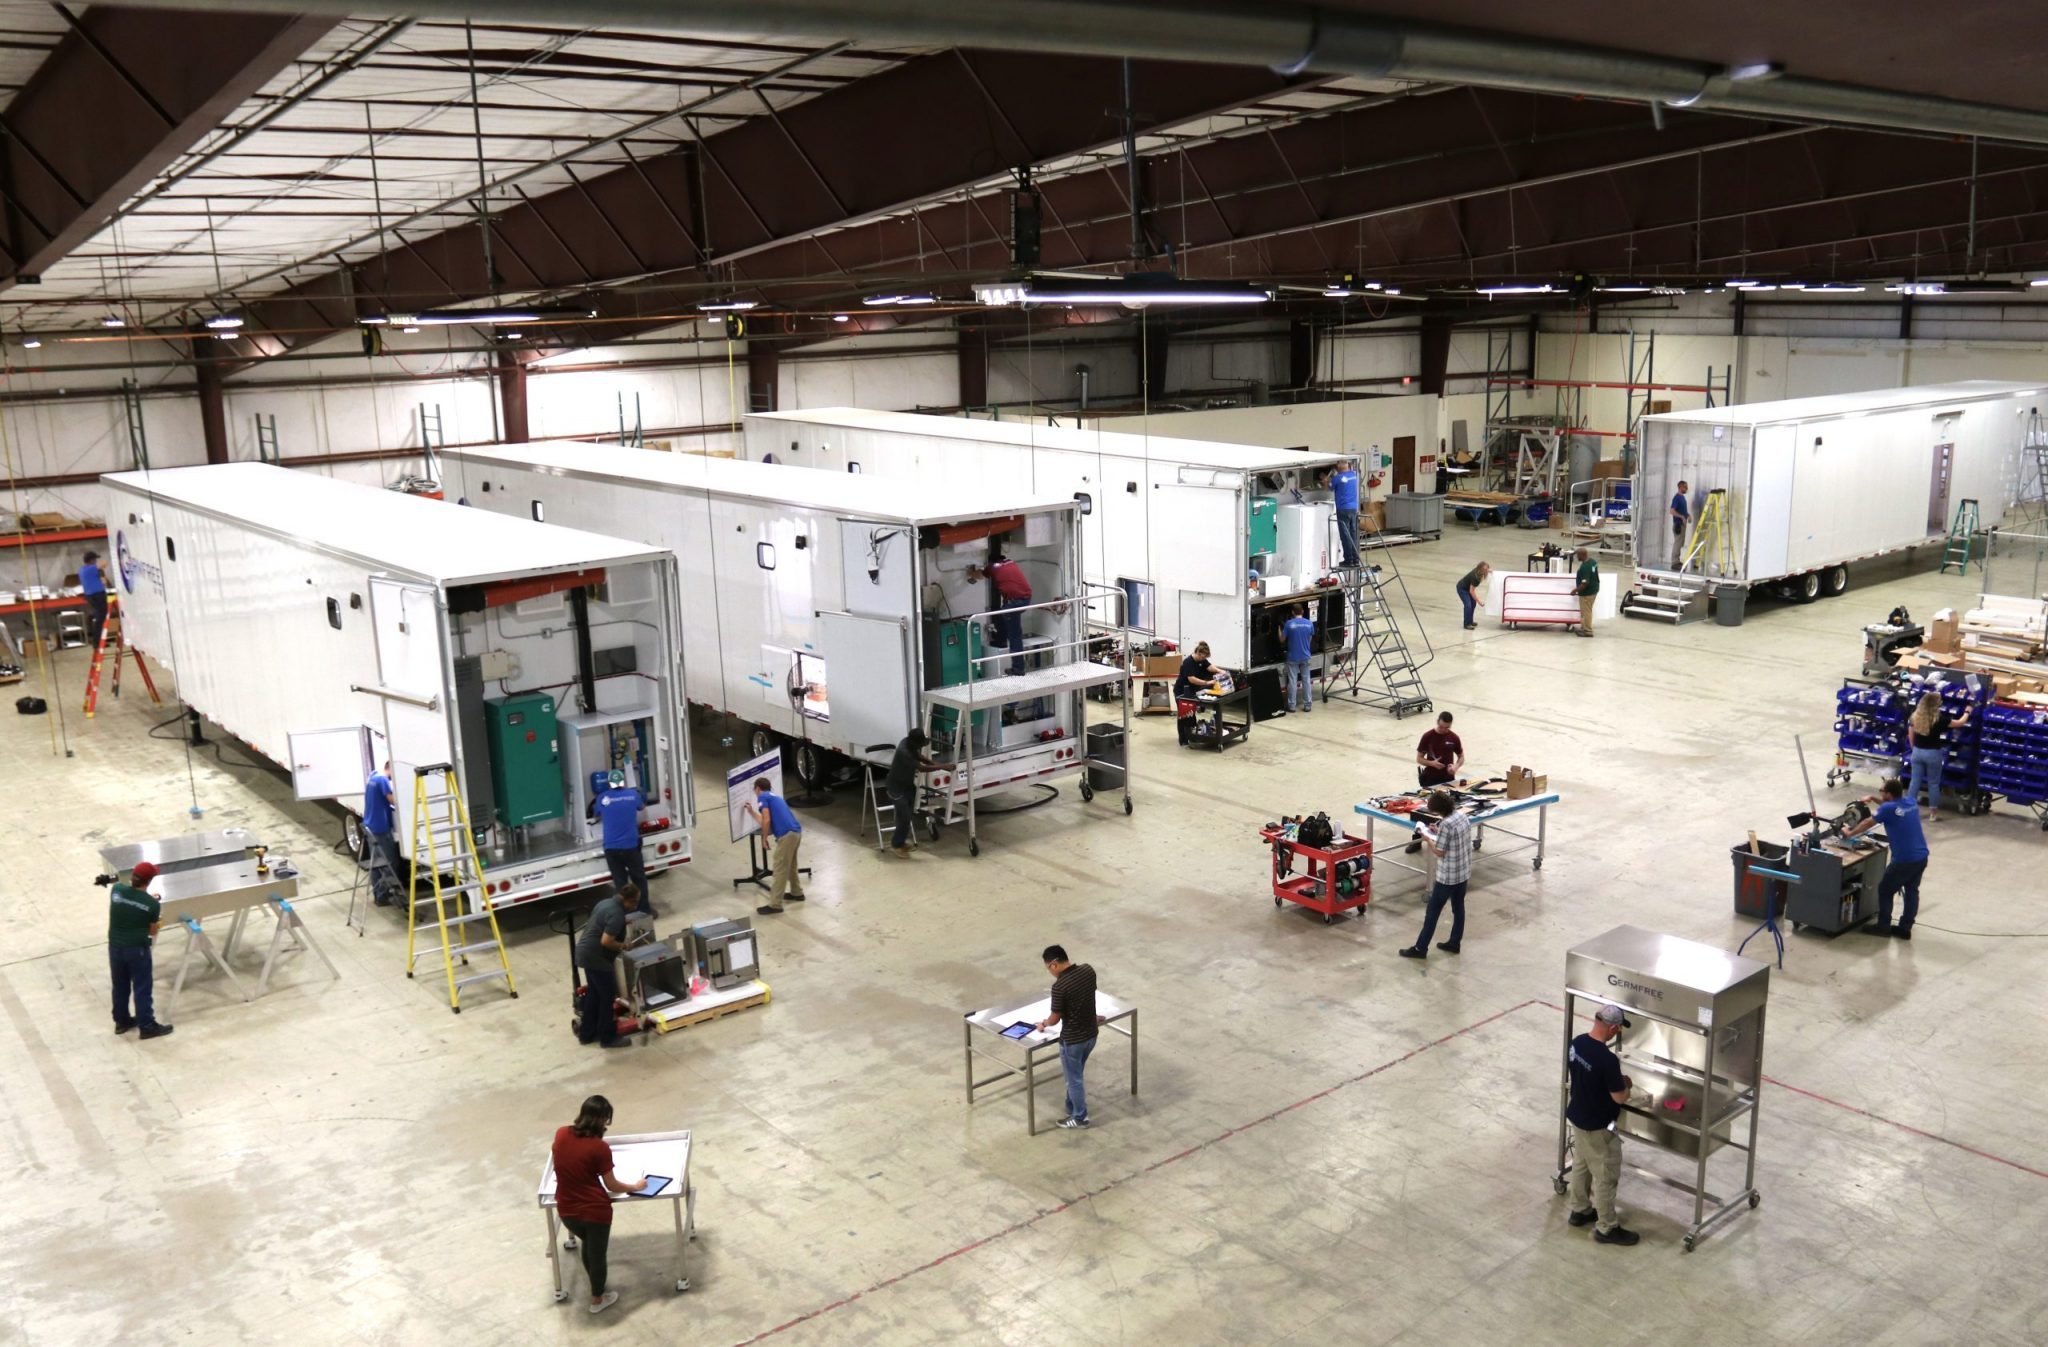 Mobile Trailers in Facility